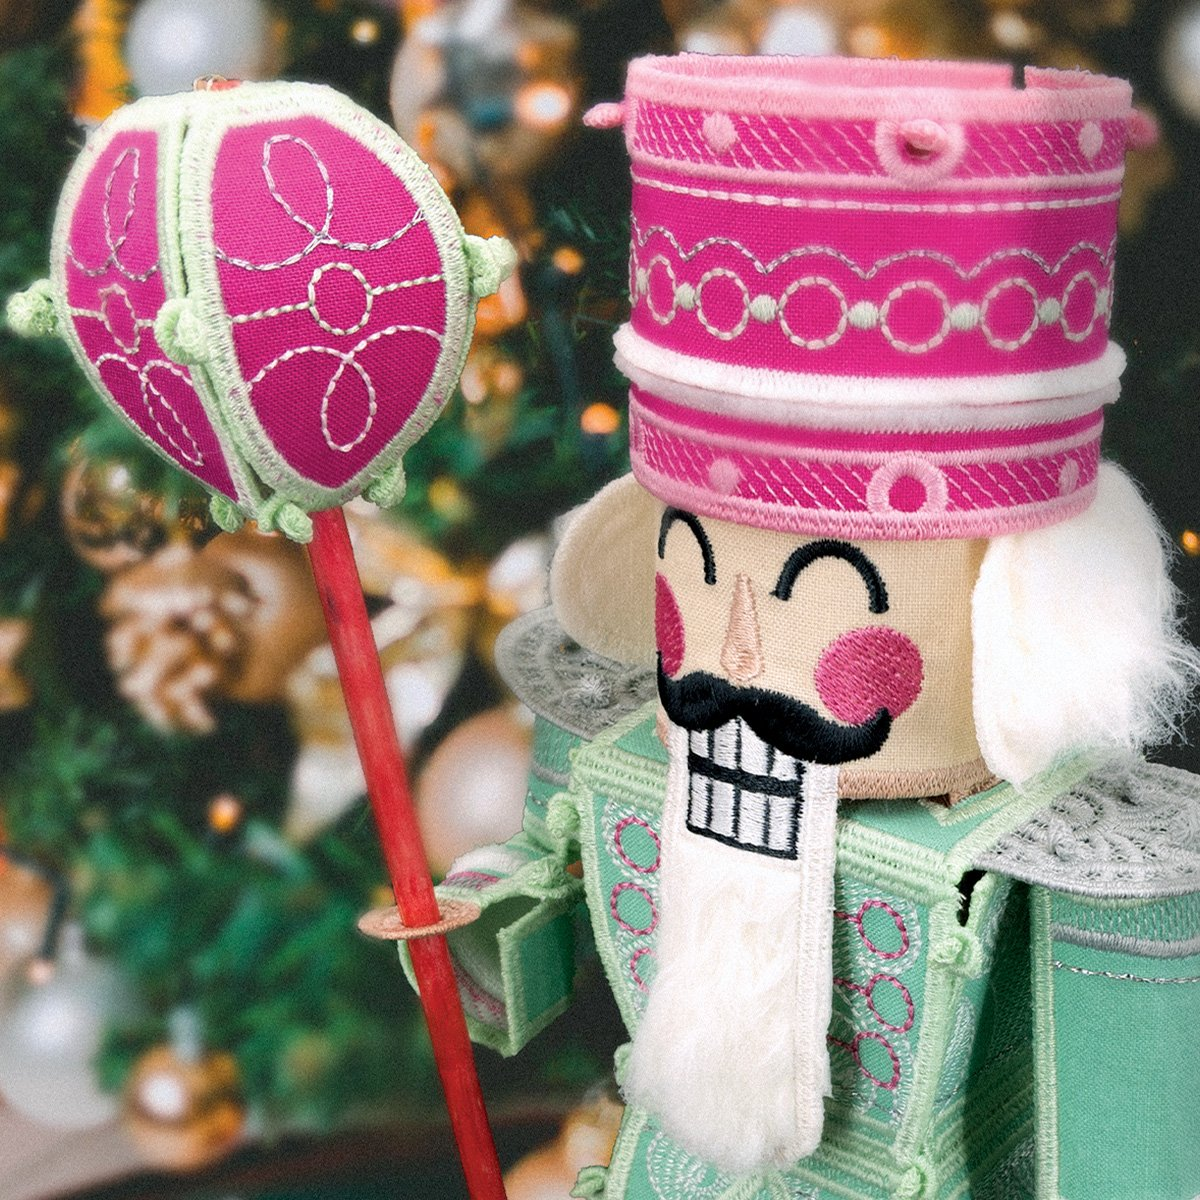 Scissortail Stitches Freestanding Sugar Plum Nutcracker